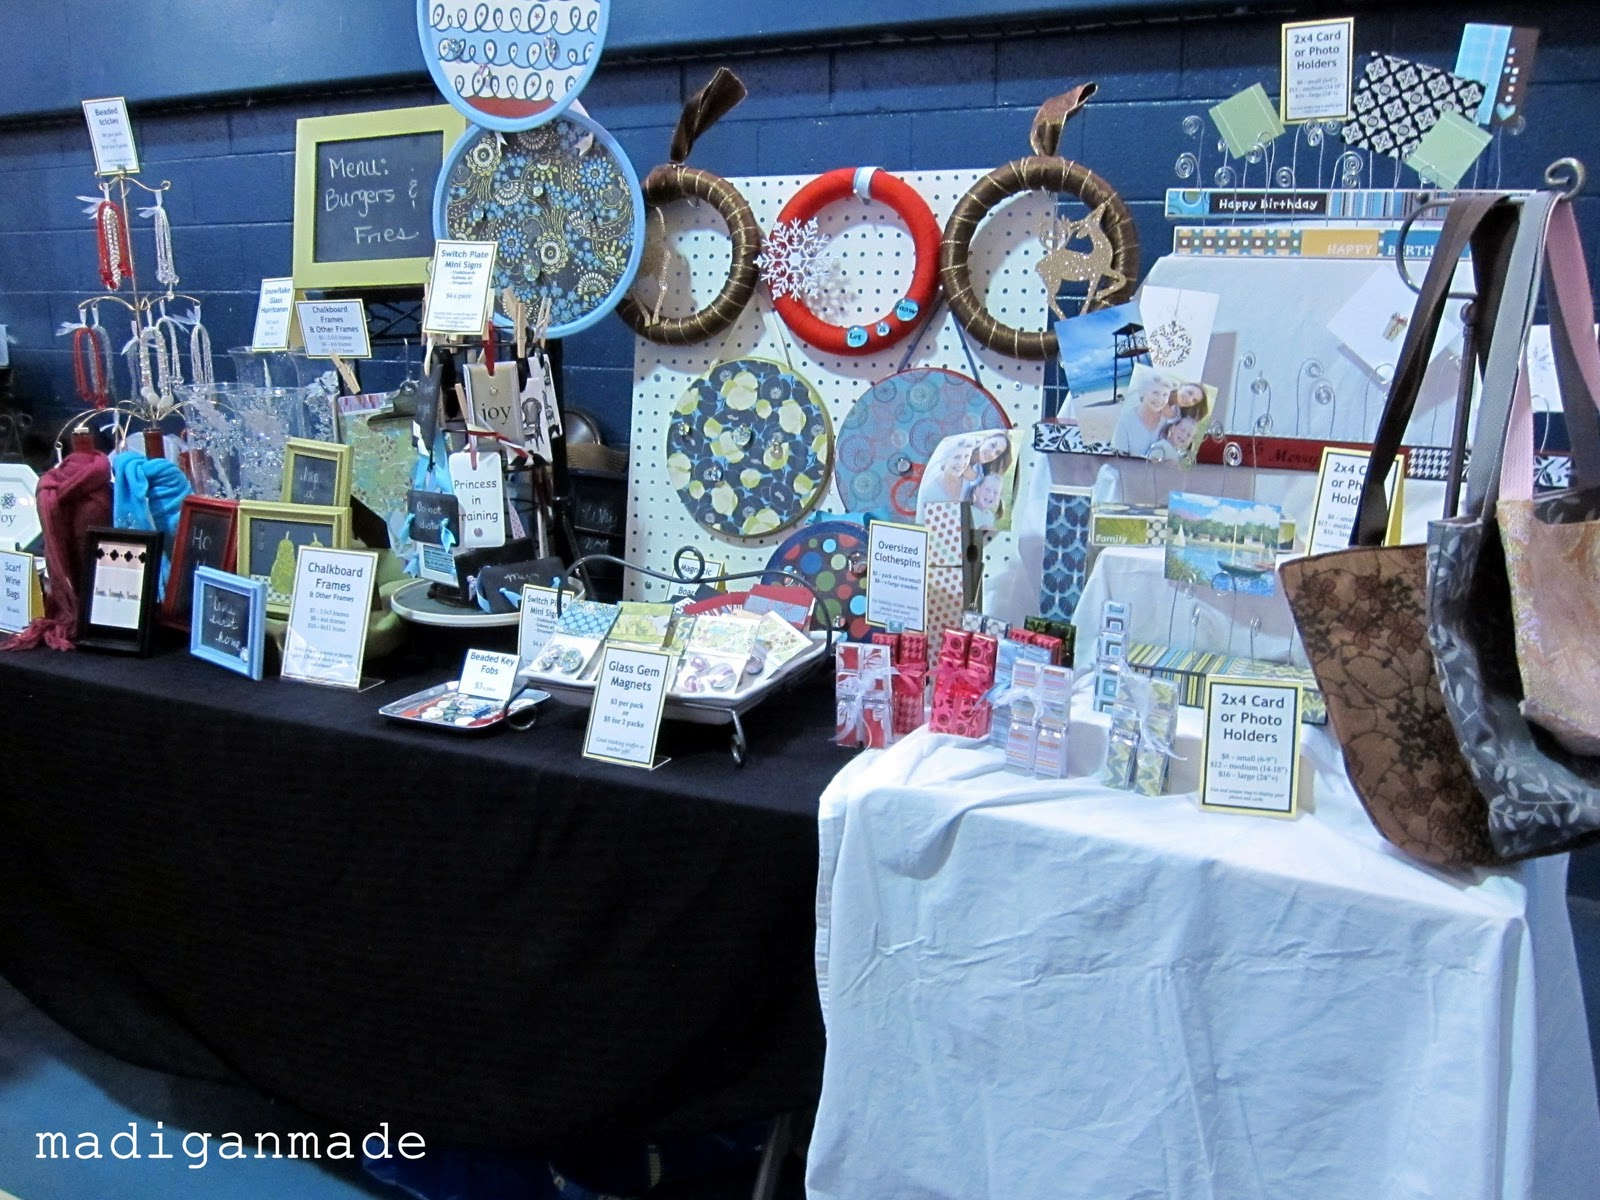 Easy Crafts To Make And Sell At Craft Shows - The day of the show was a loooong day on our feet thank goodness for comfy shoes i did sell some items it felt really good to come home with money in